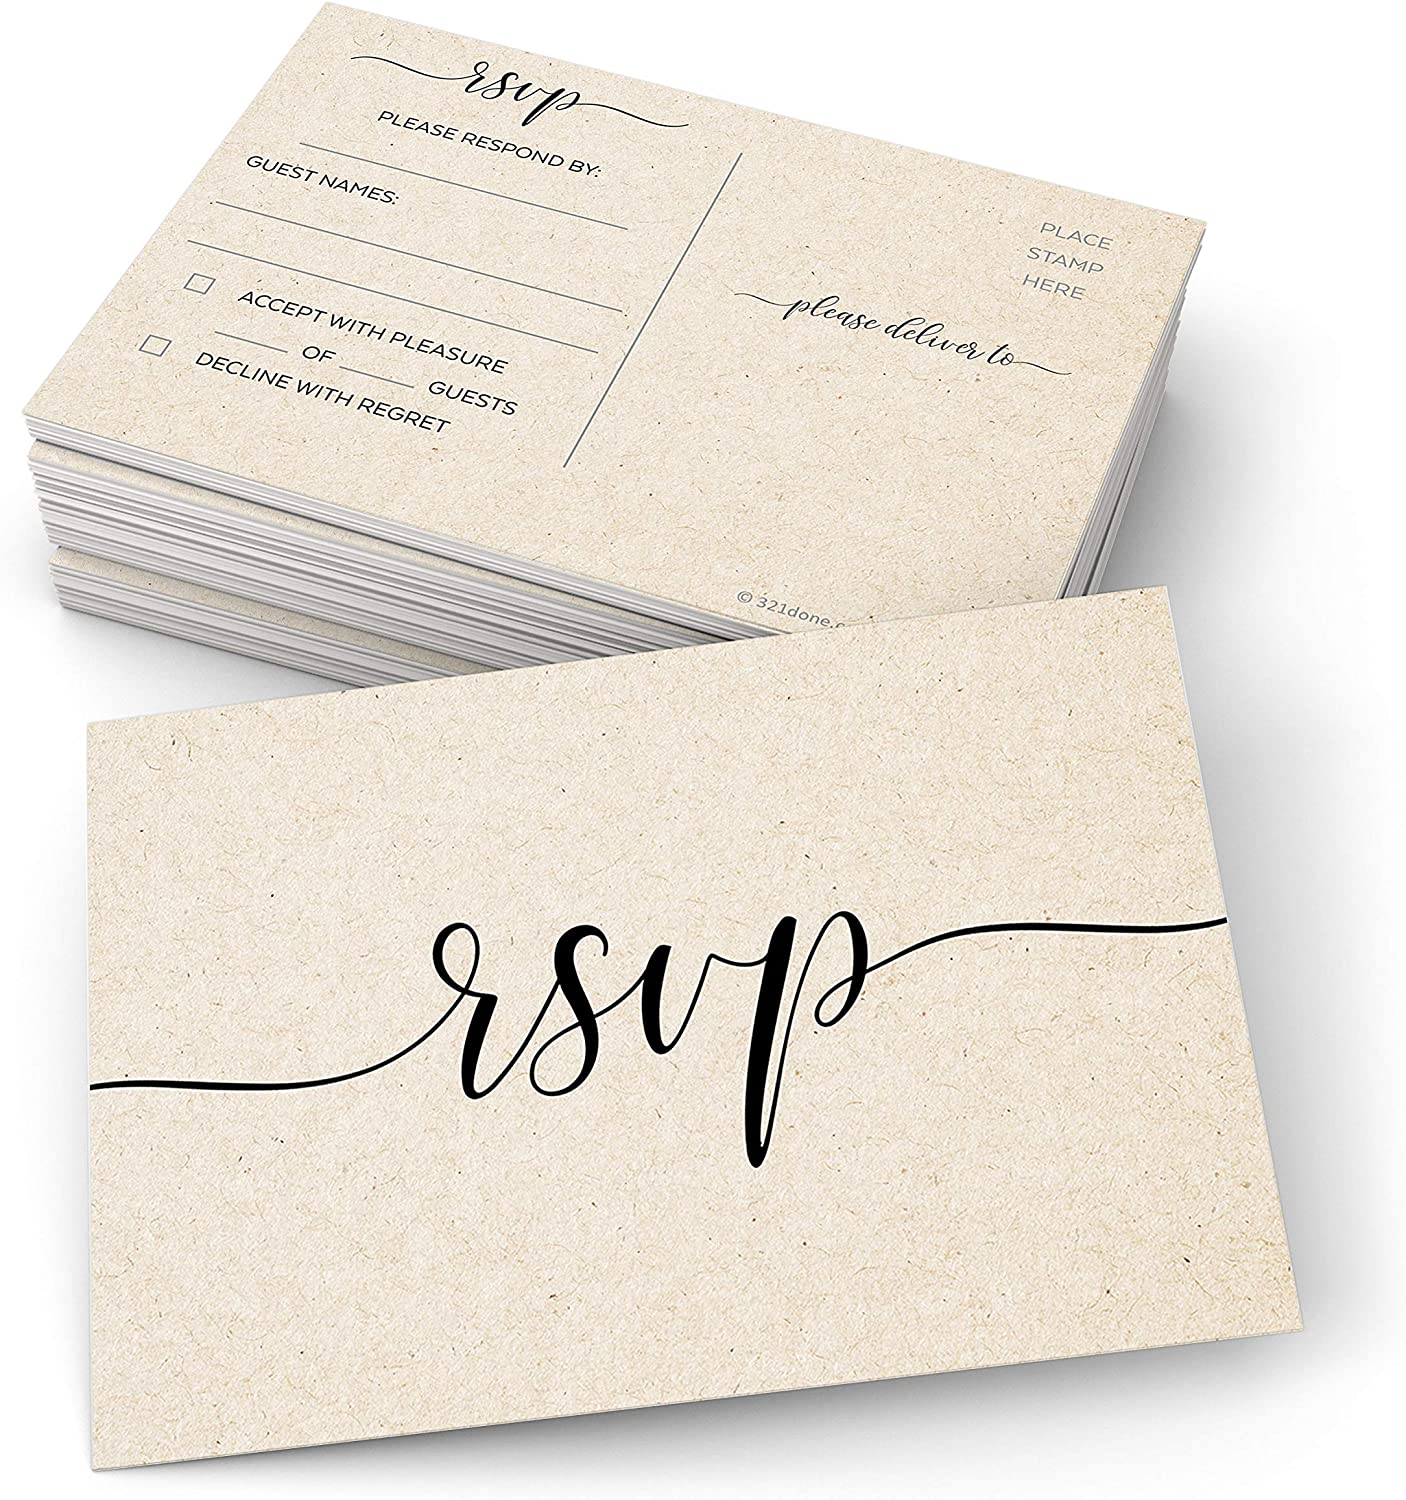 """321Done RSVP Postcards (Set of 50) Small 3.5"""" x 5"""" – Rustic Kraft Tan, Limit Guests, USPS Post Office Addressing Response Cards for Wedding, Bridal Shower, Baby Shower - Made in USA - Formal Elegant"""